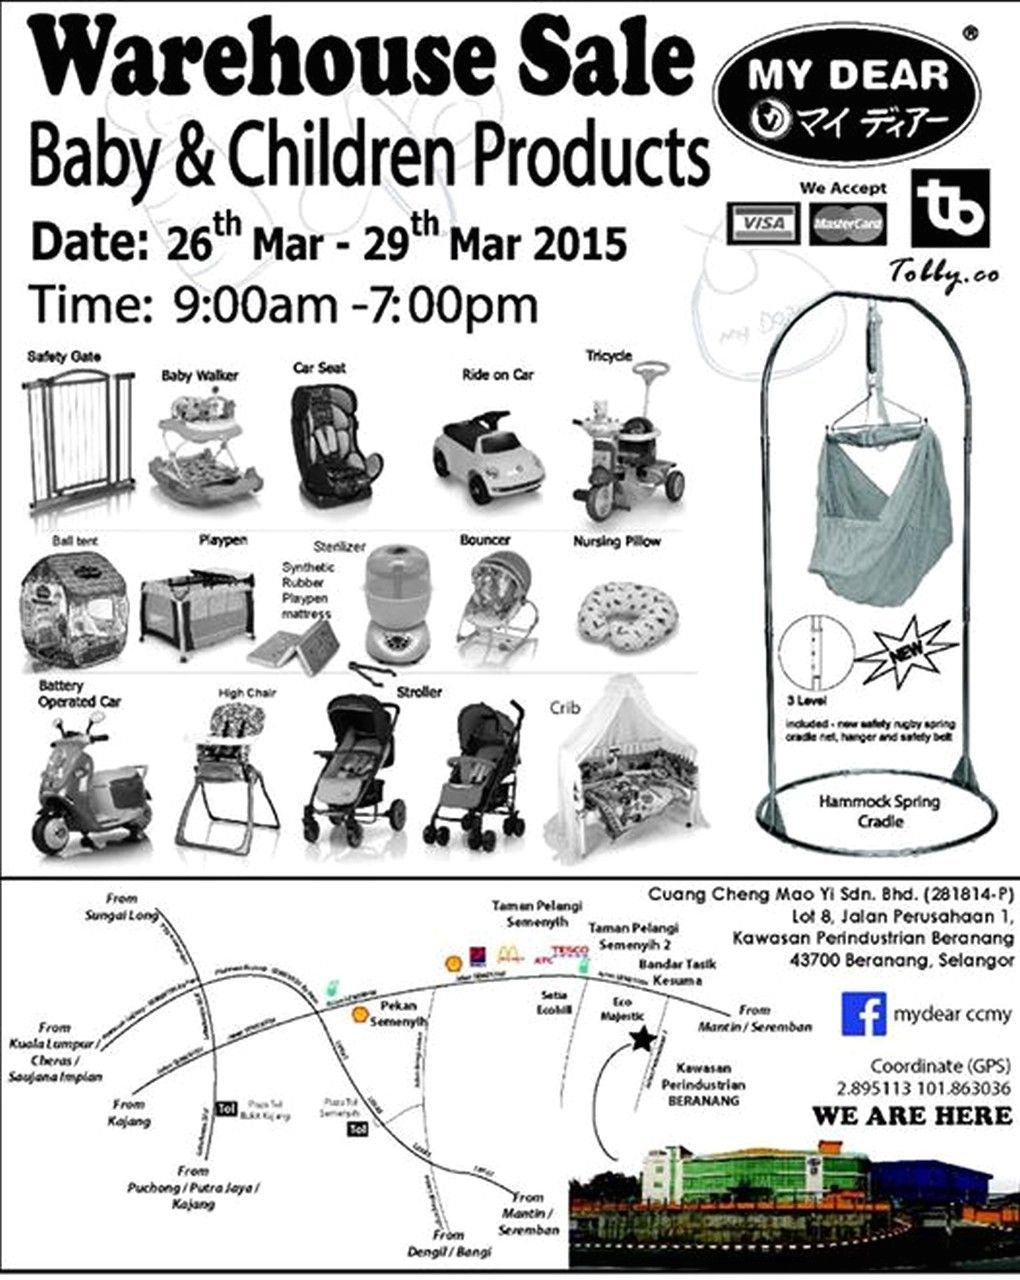 Branded Baby Products & Toys Clearance Warehouse Sale in